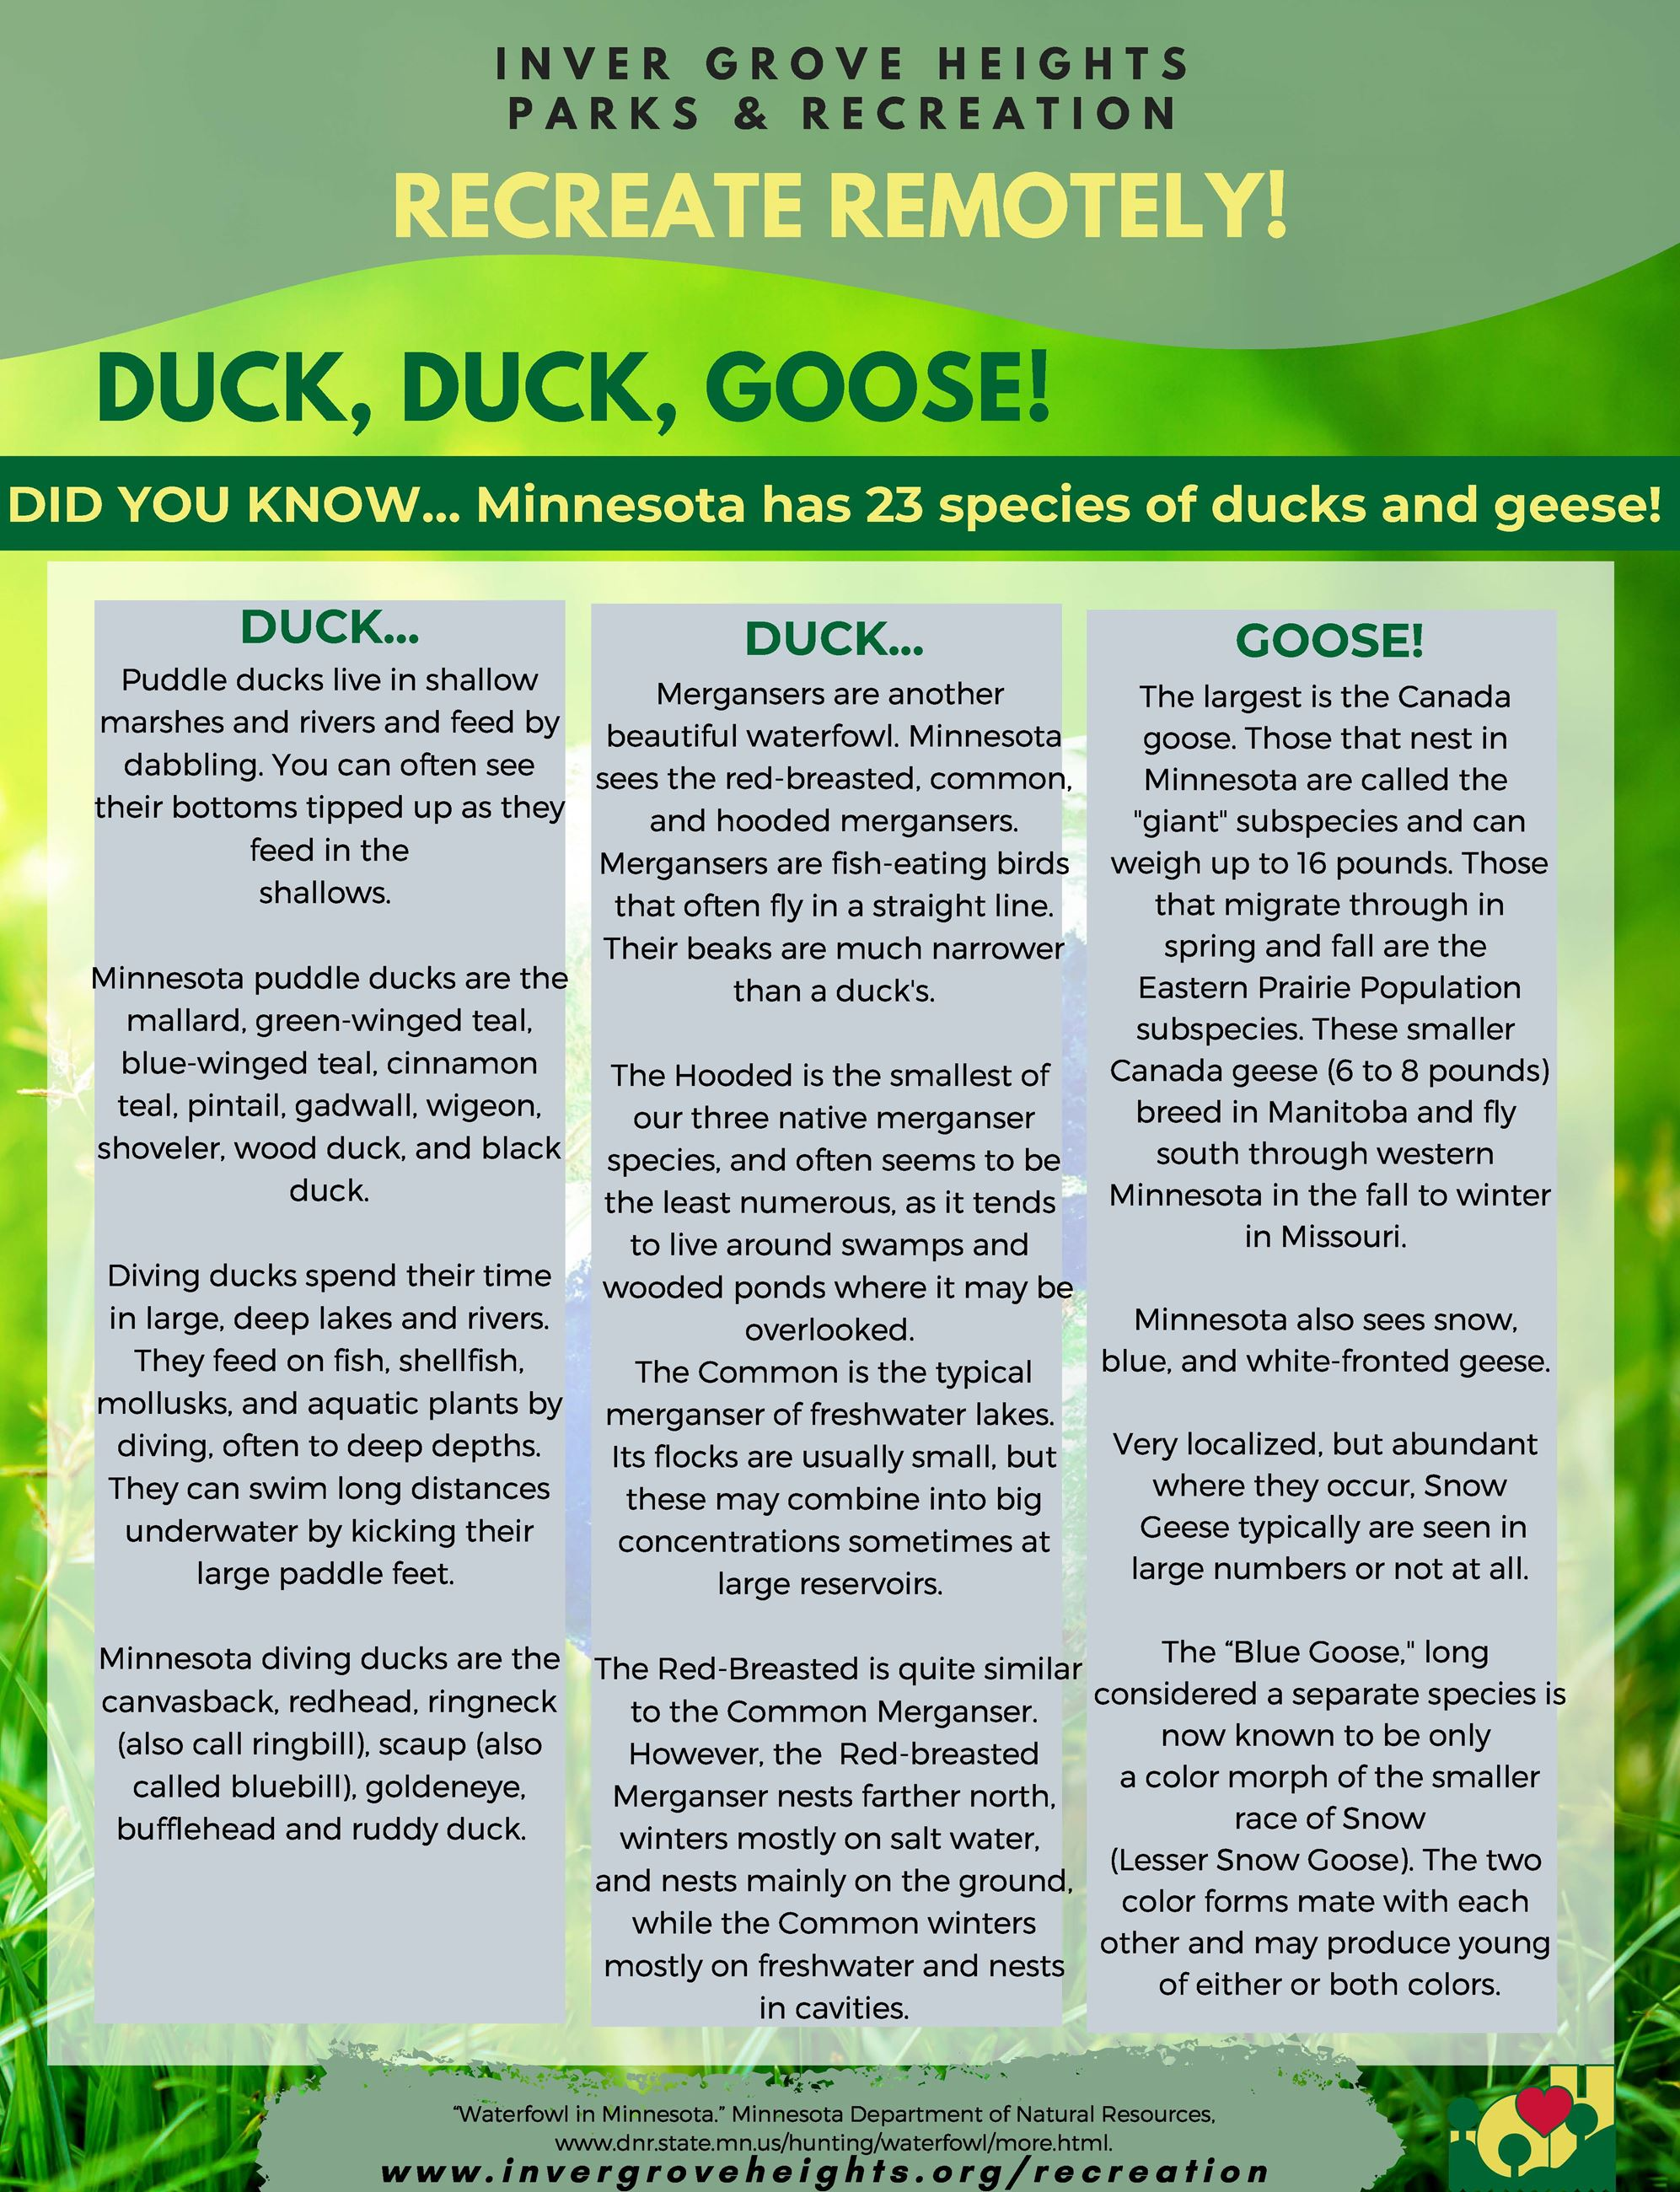 Recreate Remotely 2020 Template - 8.5x11 - EarthDay activities - Duck Duck Goose